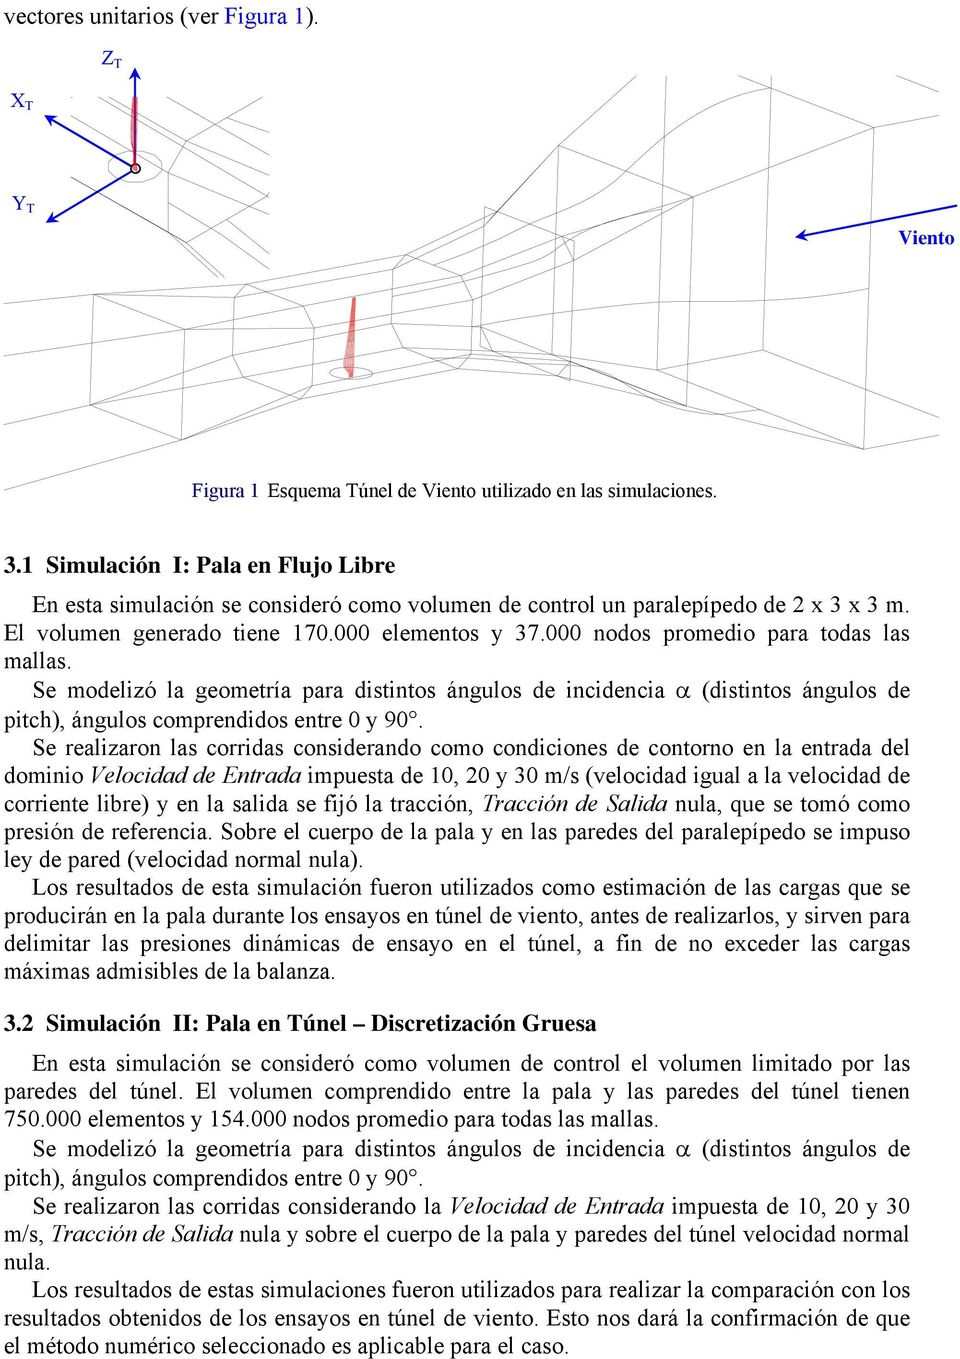 000 odos promedio para todas las mallas. Se modelizó la geometría para distitos águlos de icidecia α (distitos águlos de pitc), águlos compredidos etre 0 y 90.